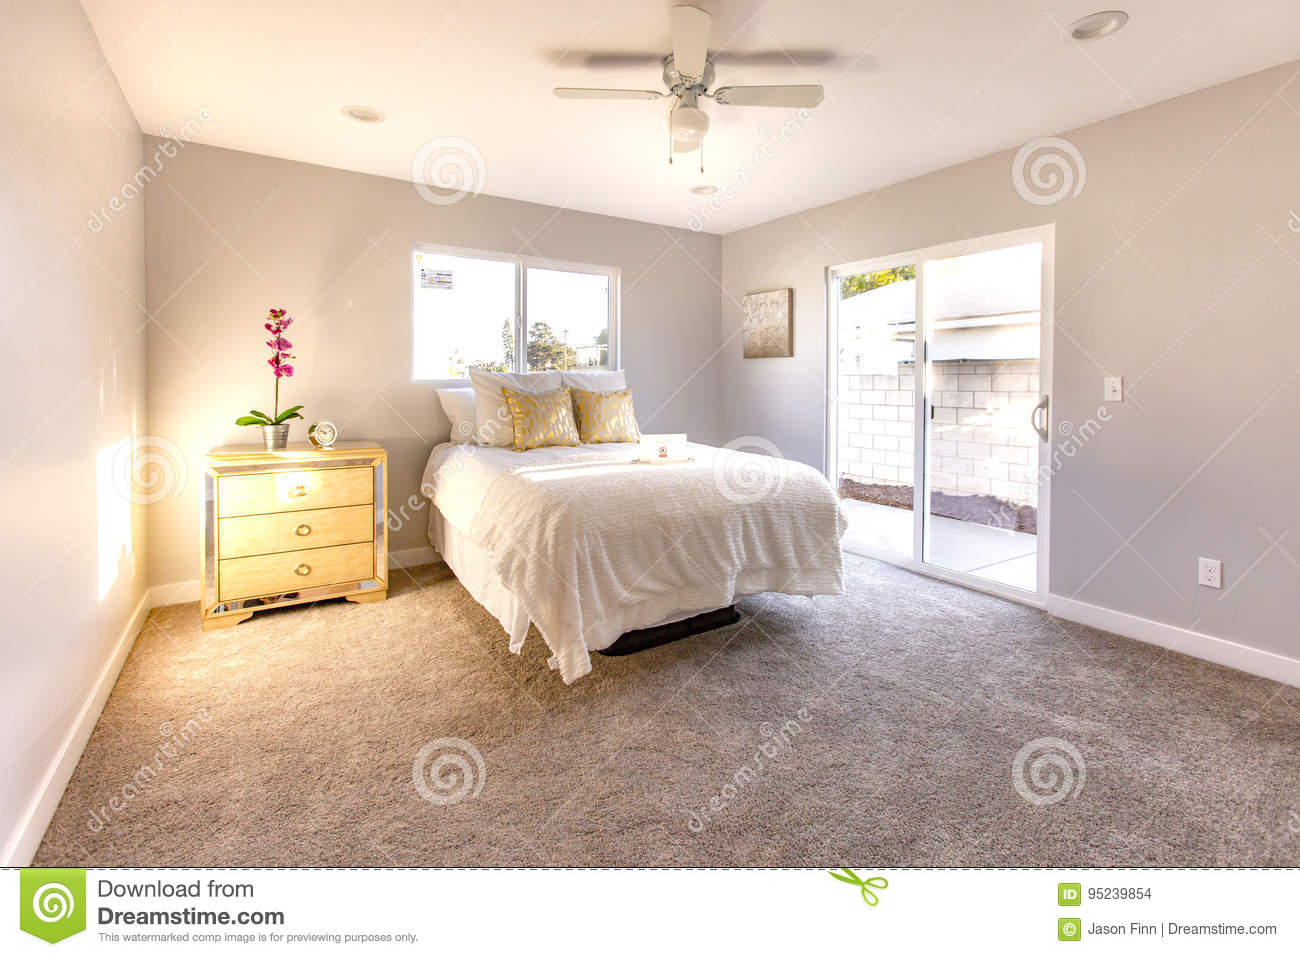 Sliding Glass Door Allows Warm Light To Flood This Master Bedroom In San Diego Model Home Stock Photo Image Of Door Cozy 95239854